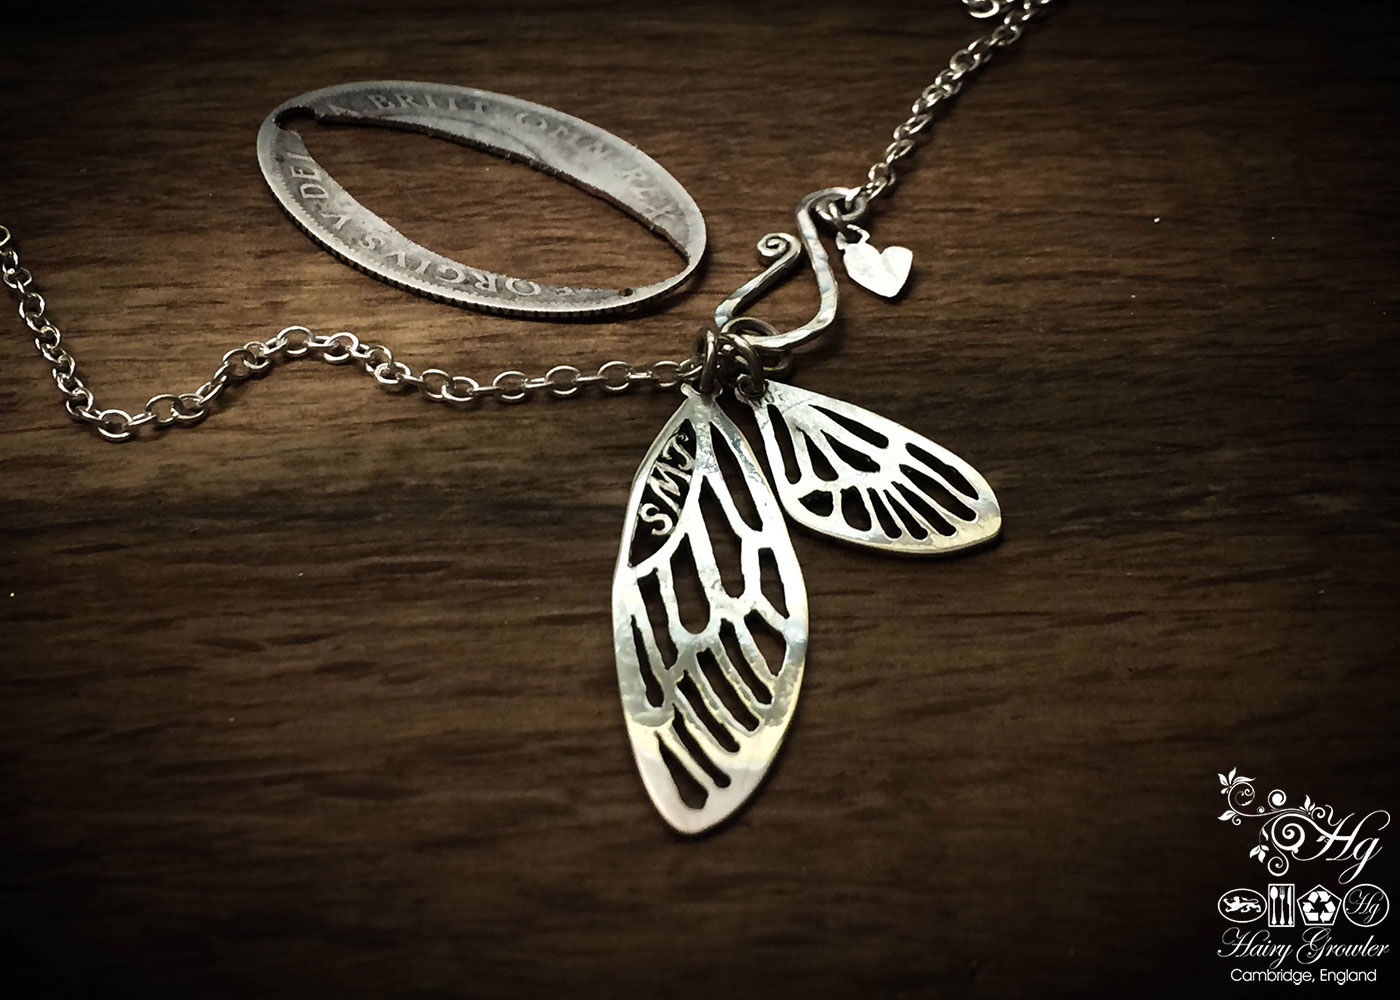 Handmade, recycled, sterling silver fairy faerie wings necklace being handmade